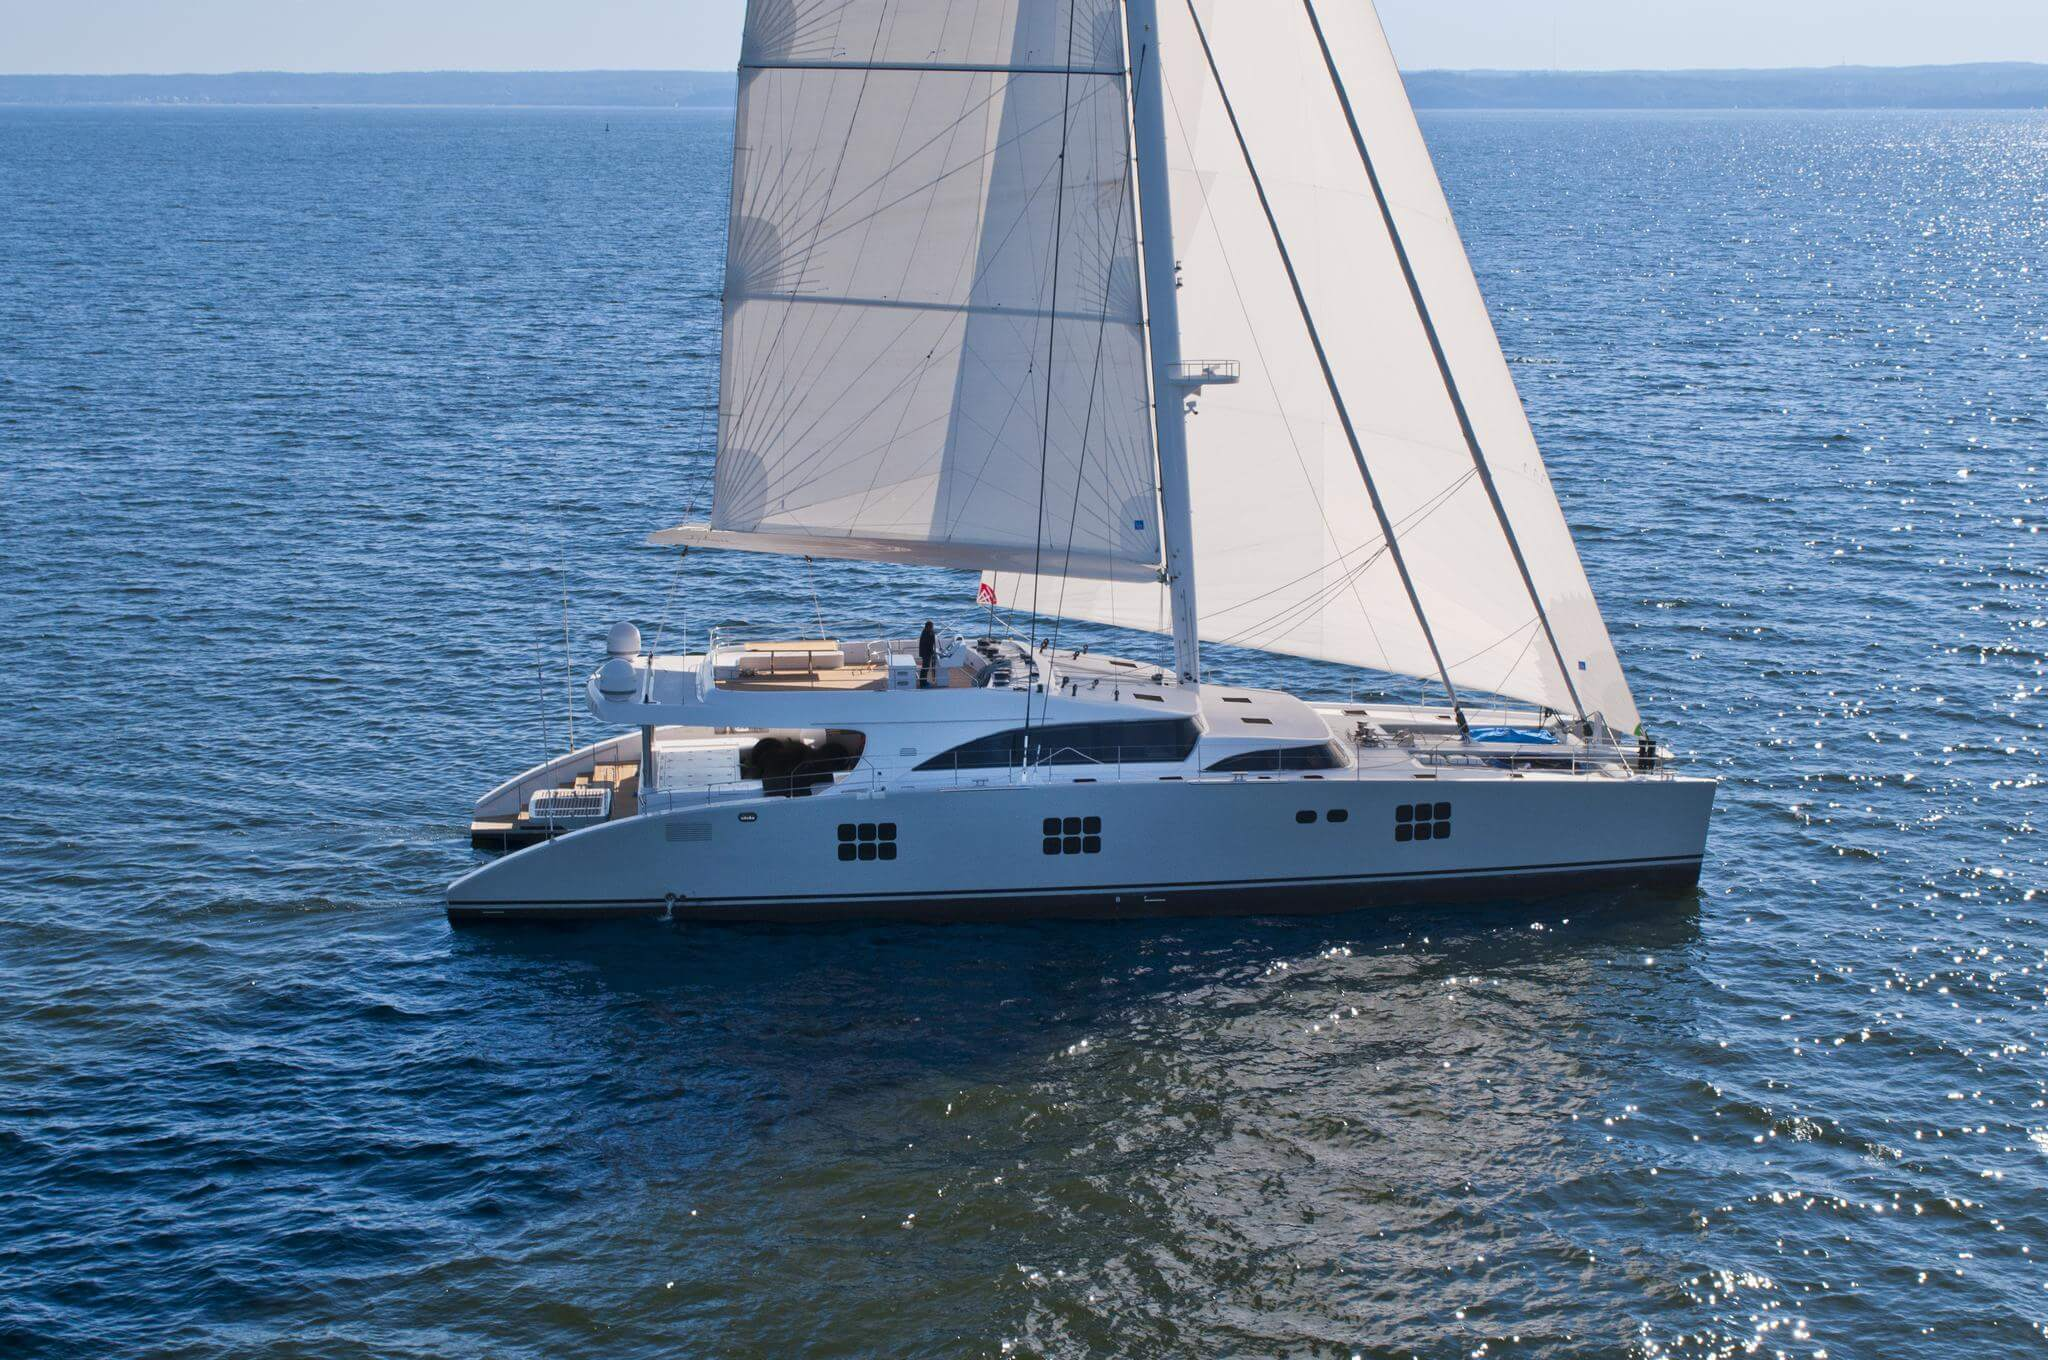 Launched Sail Catamaran for Sale 2009 Sunreef 102 Boat Highlights